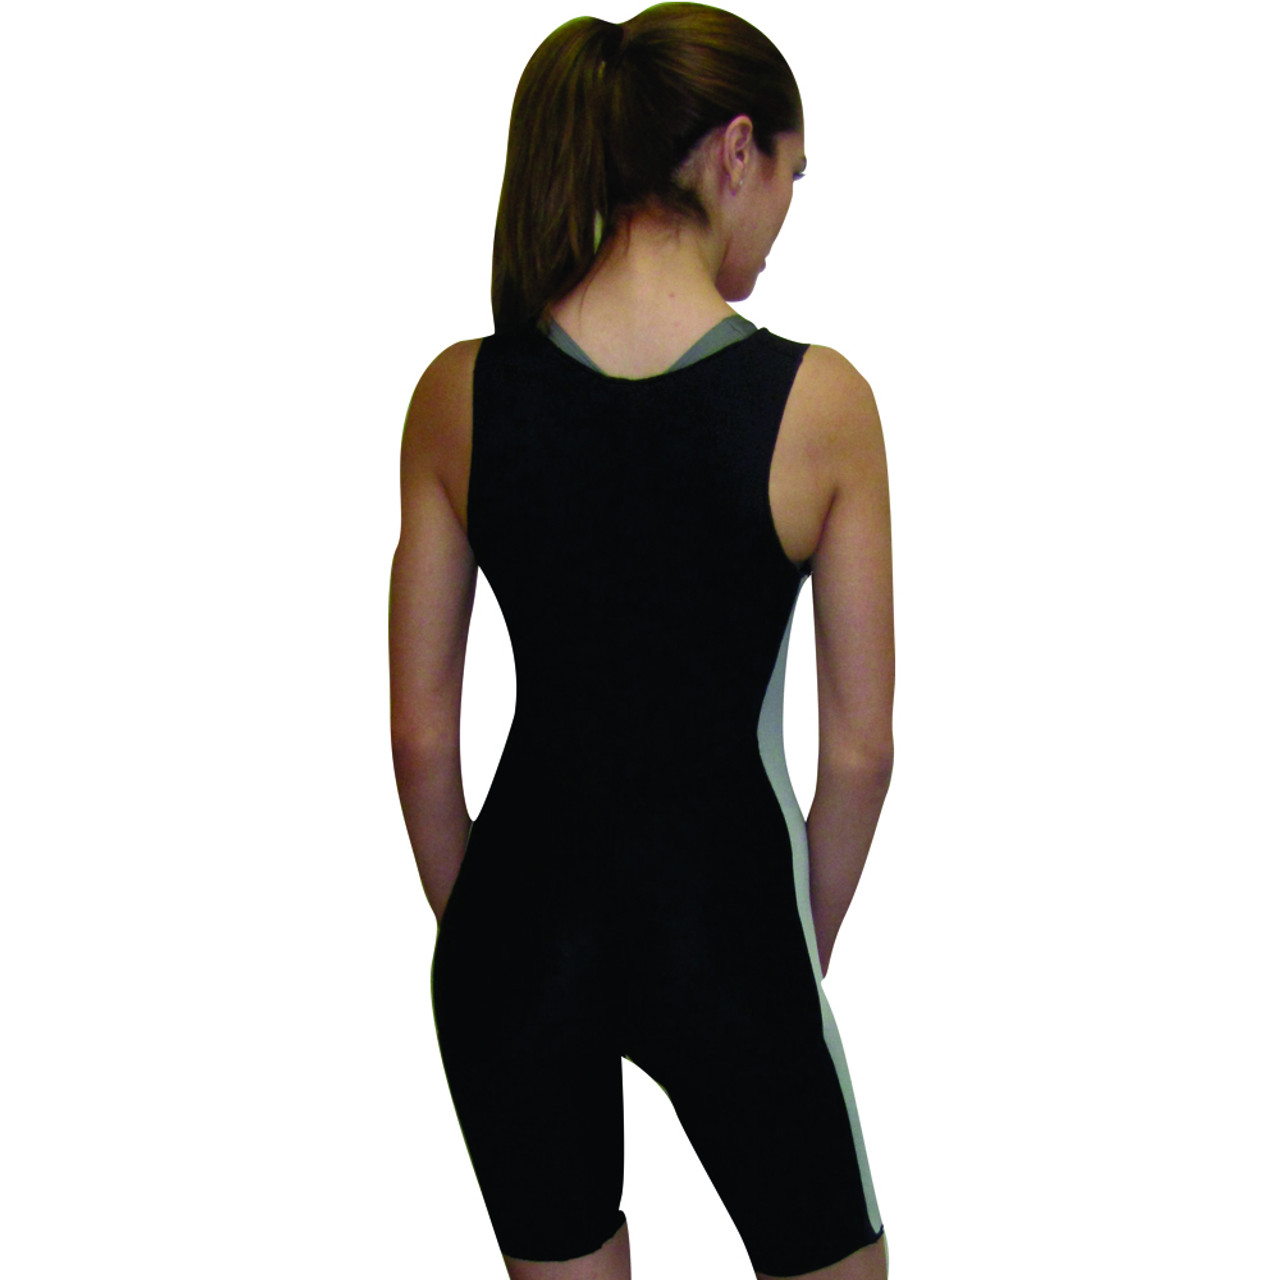 0d1e5a921ef45 Neoprene Sweat Hot Training Belt Redu Sauna Shaper Body Suit - Mundo ...